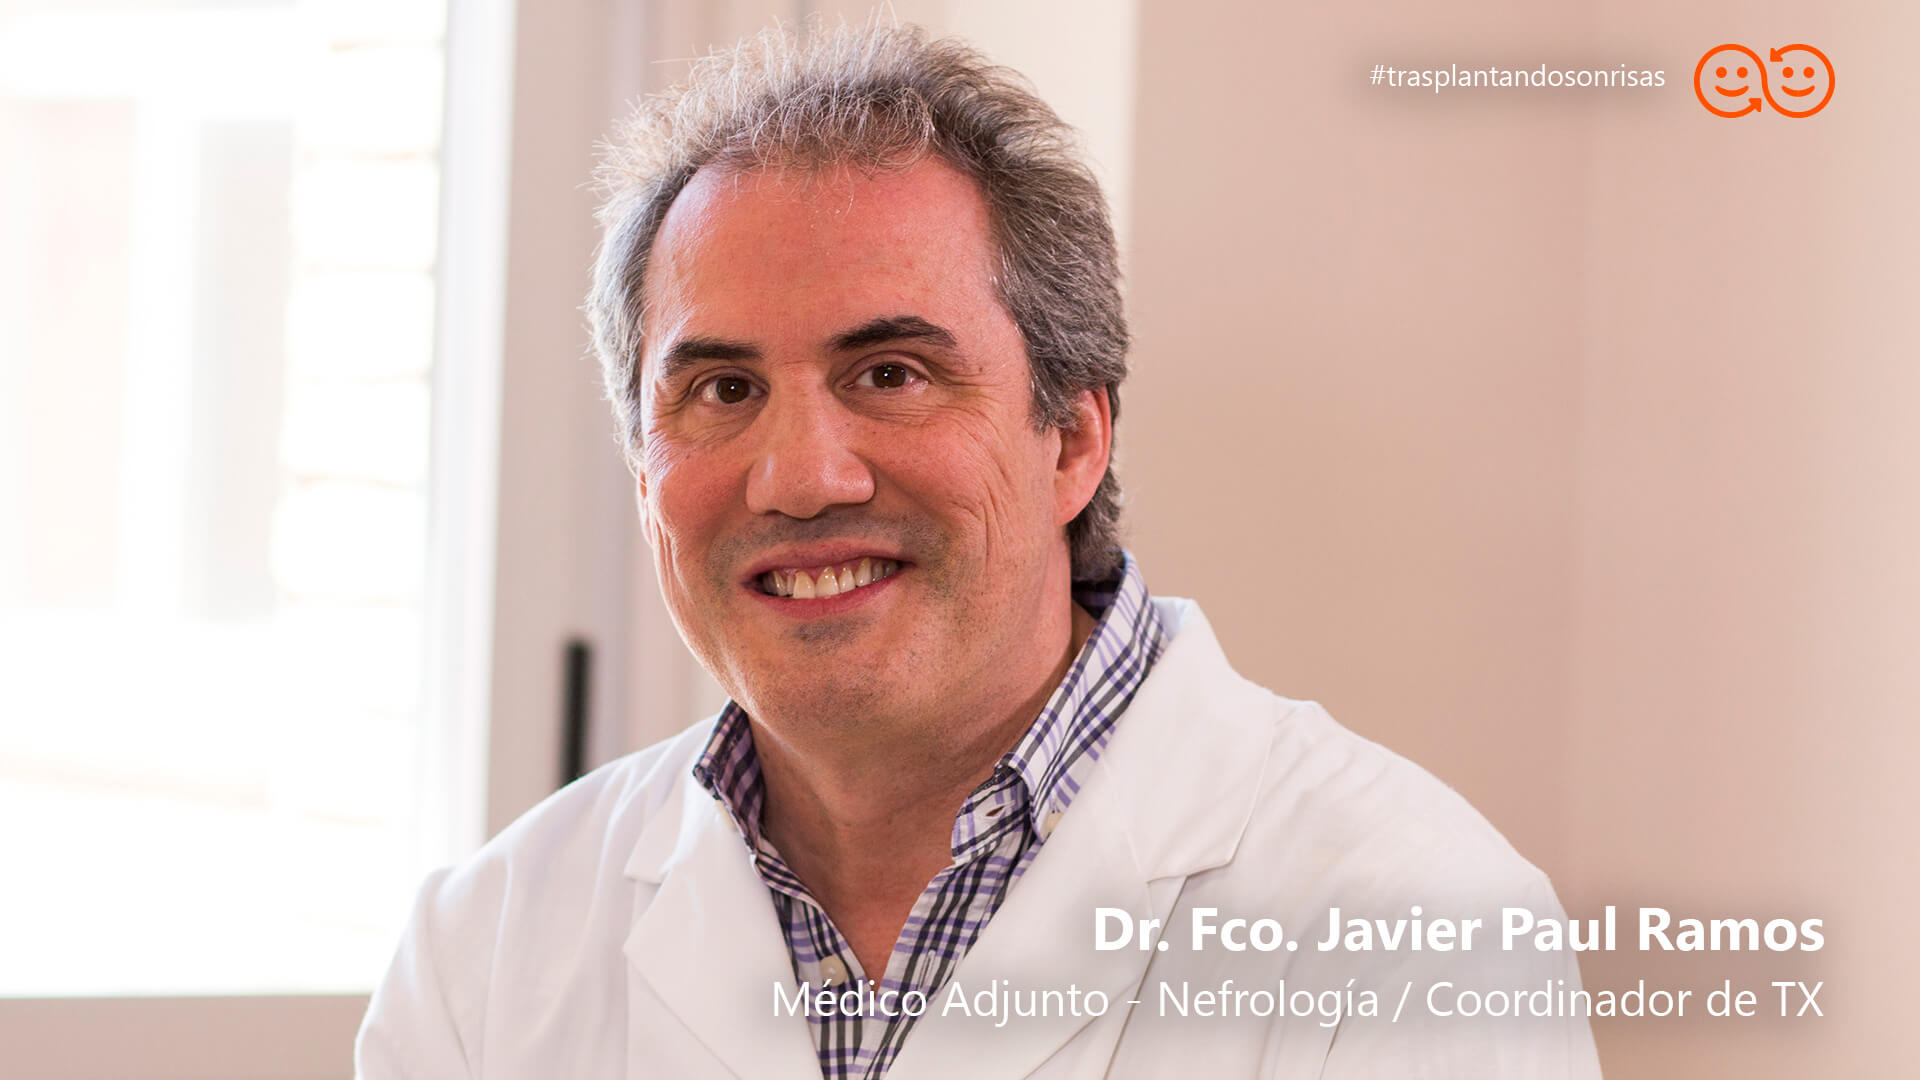 Dr. Francisco Javier Paul Ramos